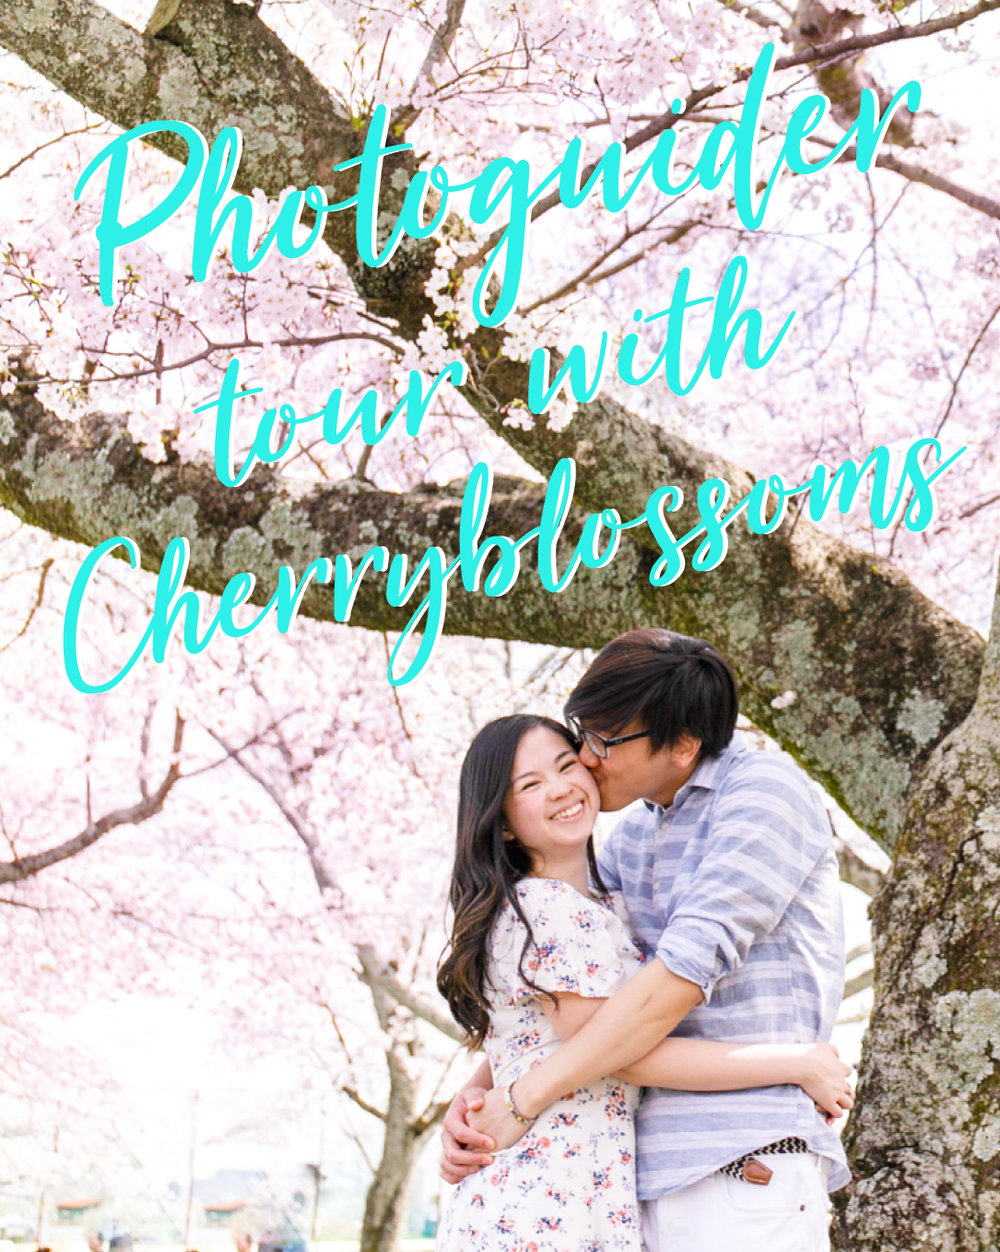 Photoshoot with cherry blossoms in Kyoto, Osaka and Tokyo